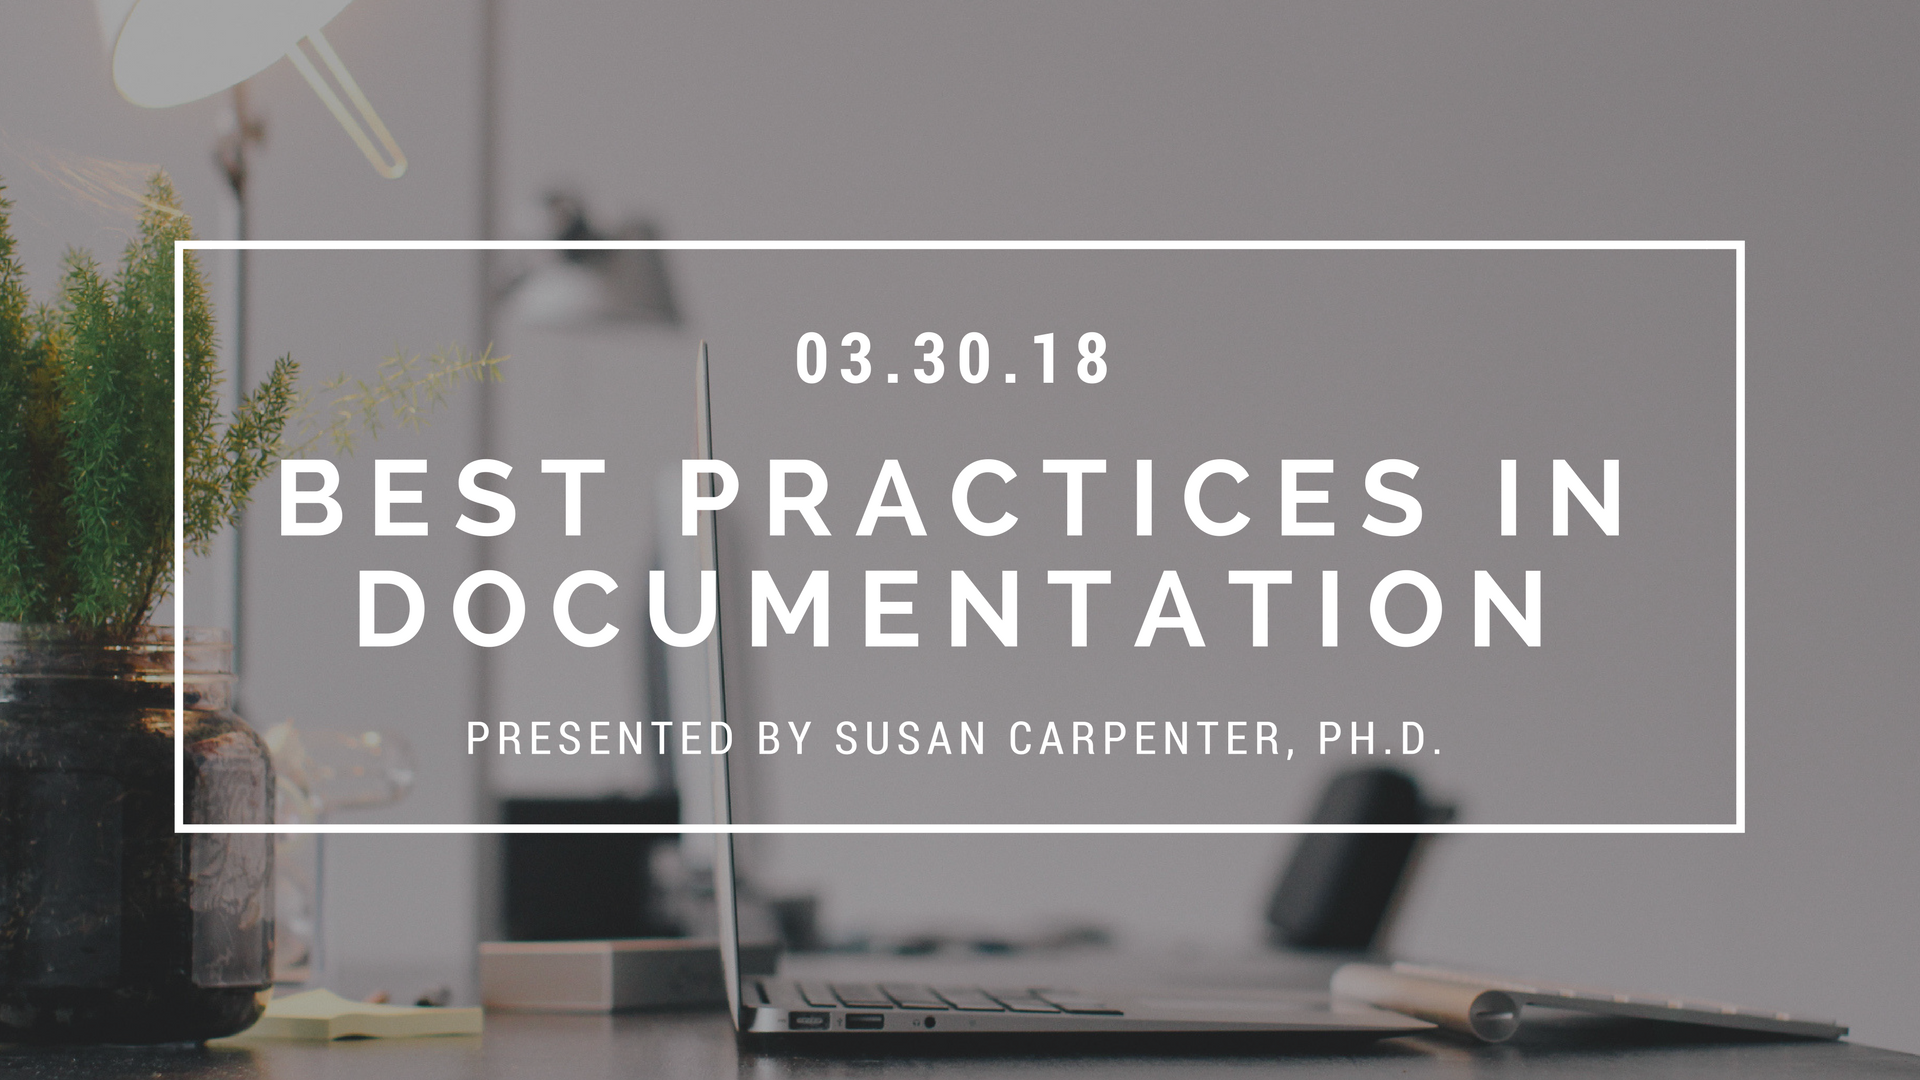 Friday, March 30, 2018 - Best Practices In Documentation Presented By Susan Carpenter, Ph.D. - Insight Counseling Centers